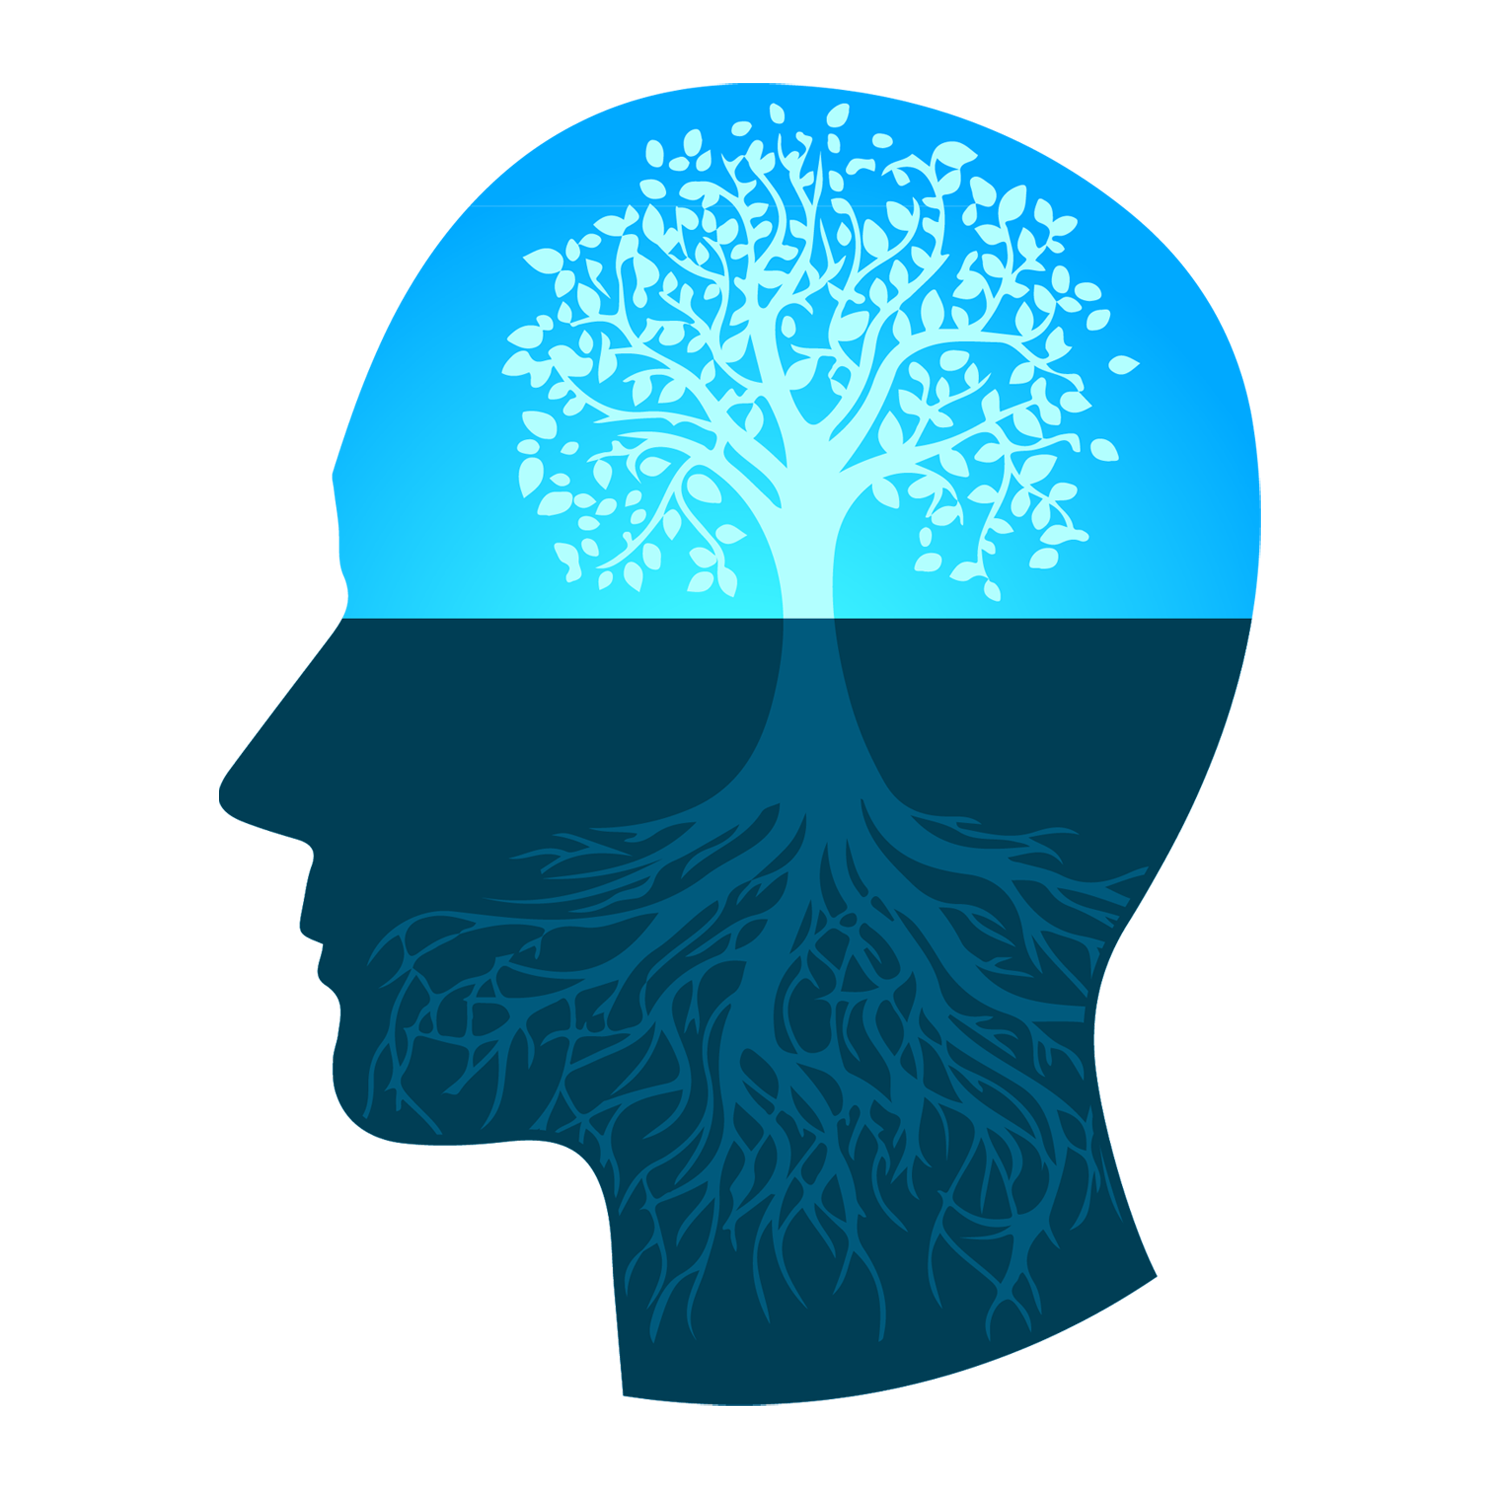 Growth vector mind. Png transparent images all